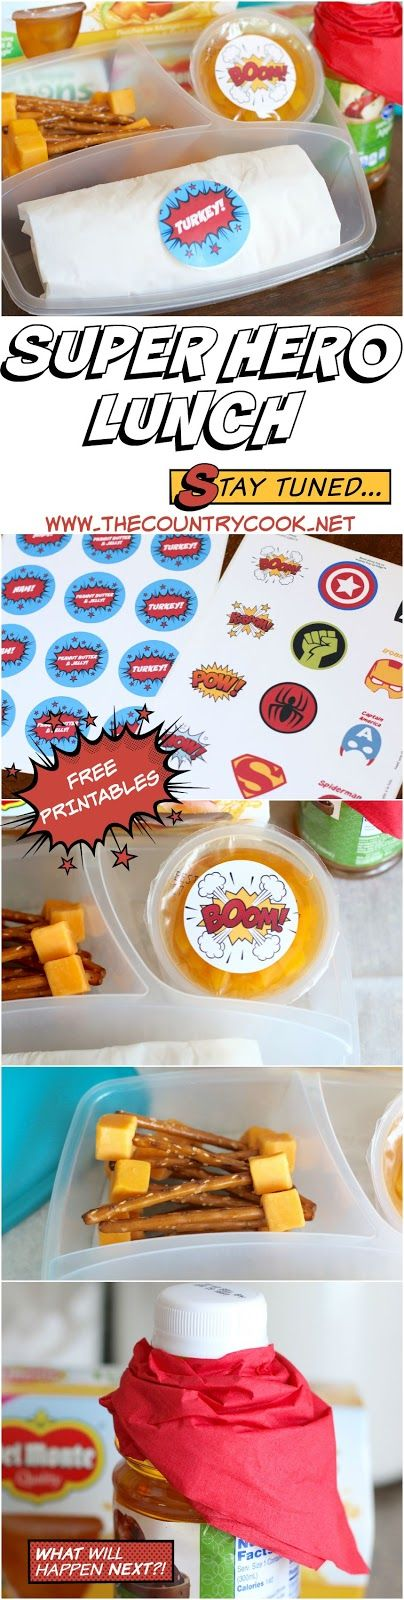 Back-to-School Super Hero Lunch idea including FREE PRINTABLES! & $50 Grocery Gift Card Giveaway from DelMonte Fusions! #SharetheSuper #BacktoSchool #Sweepstakes #mom #crafts #project